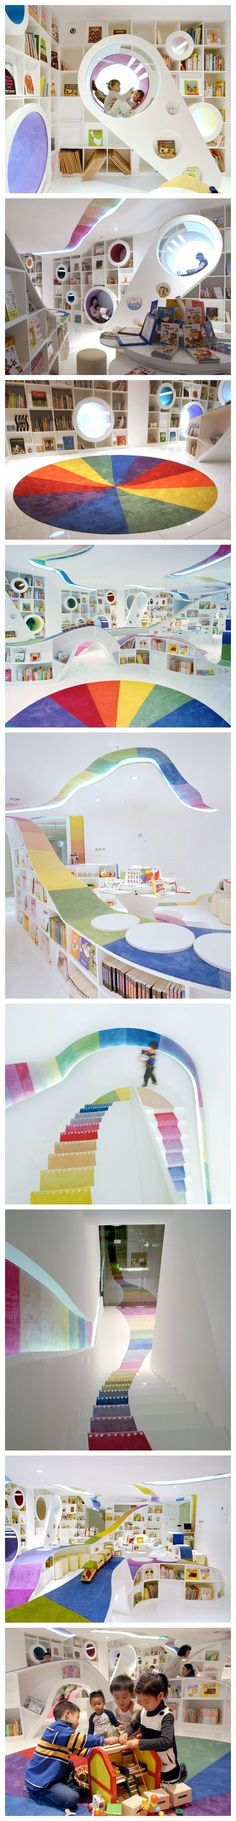 So cool! 【儿童书店,北京,designed by SAKO ,Bookstore for children in Beijin,China